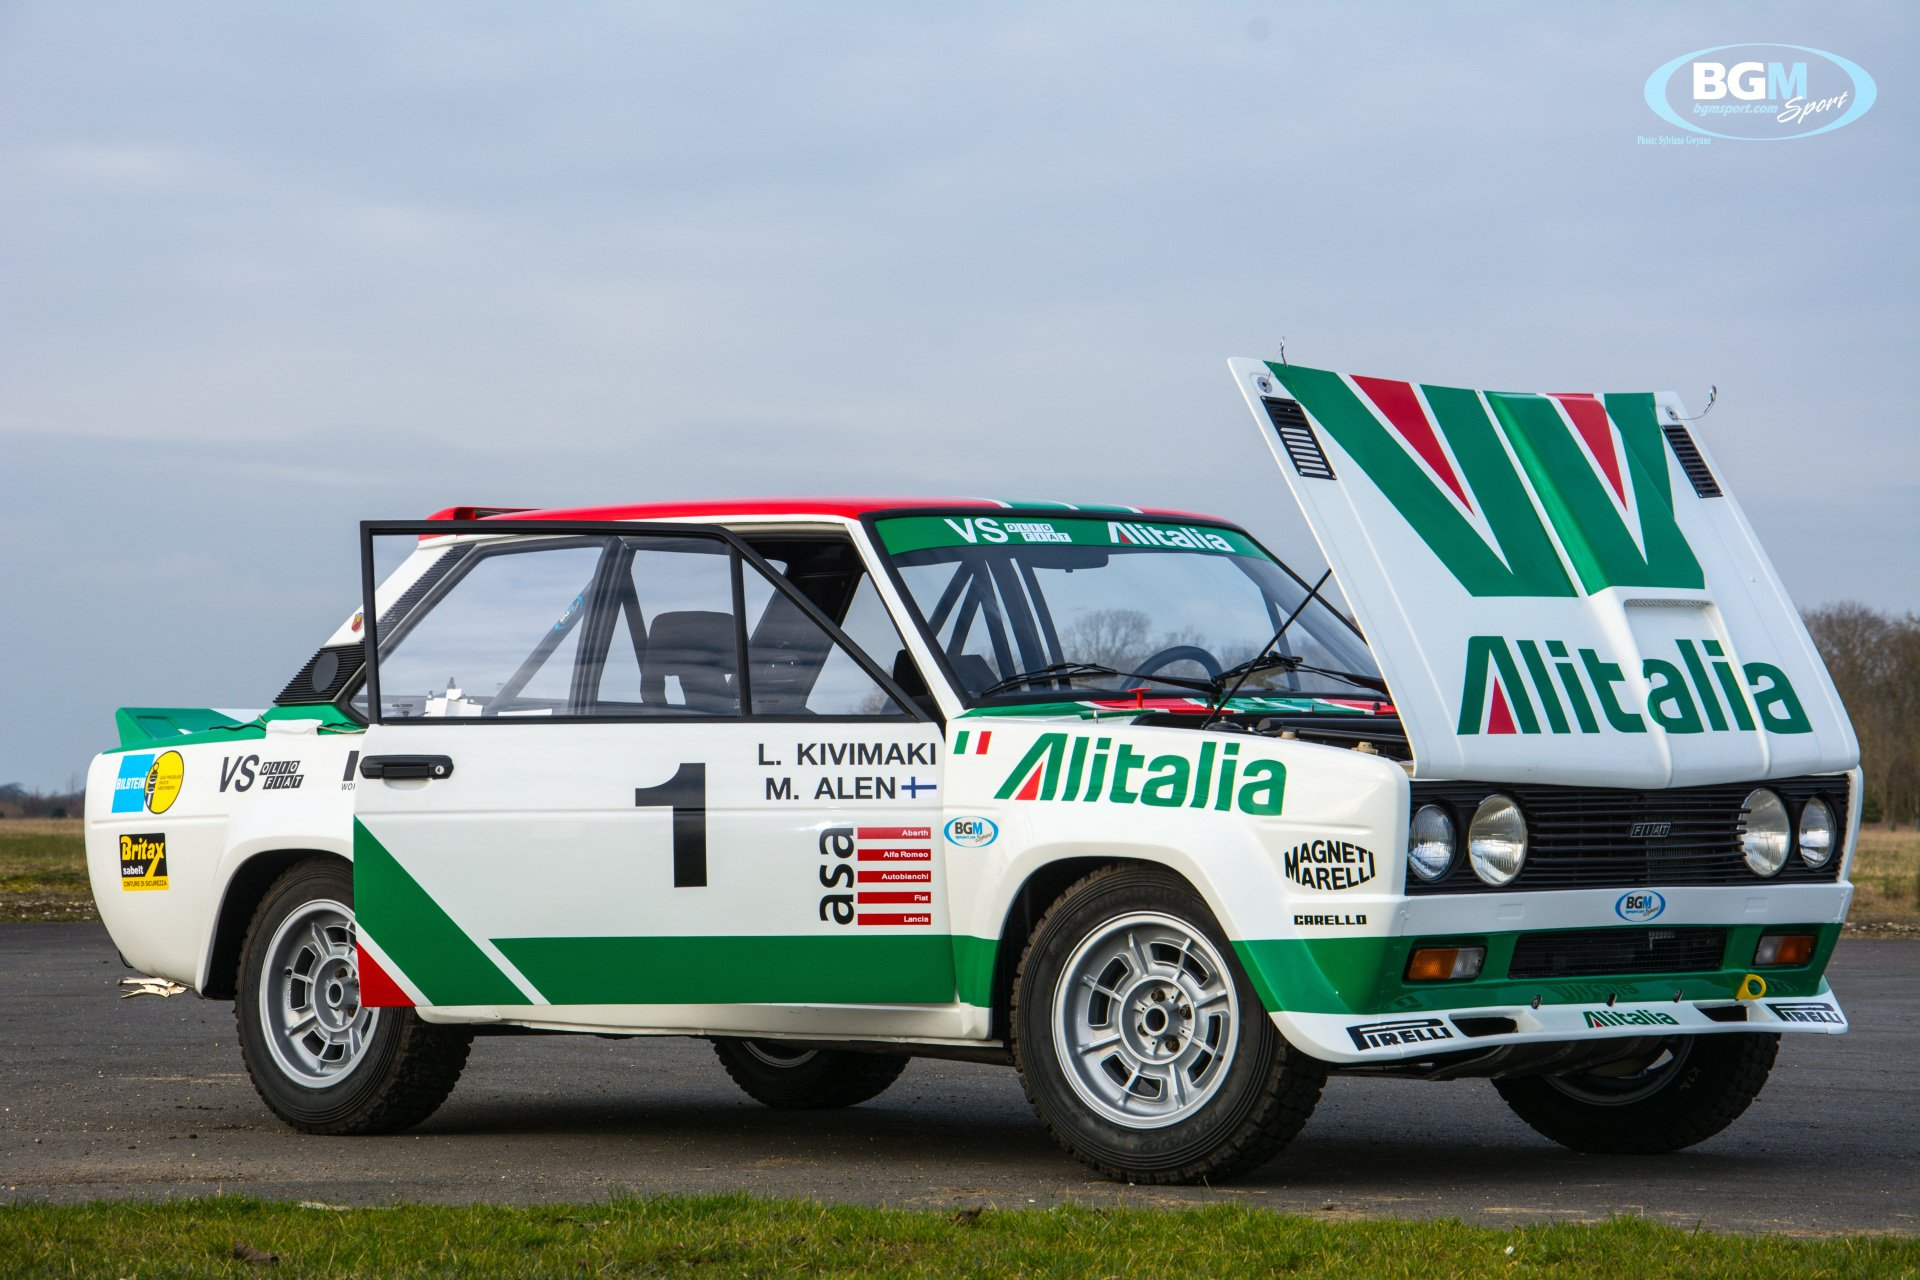 fiat-131-abarth-grp-4-rally-car-40